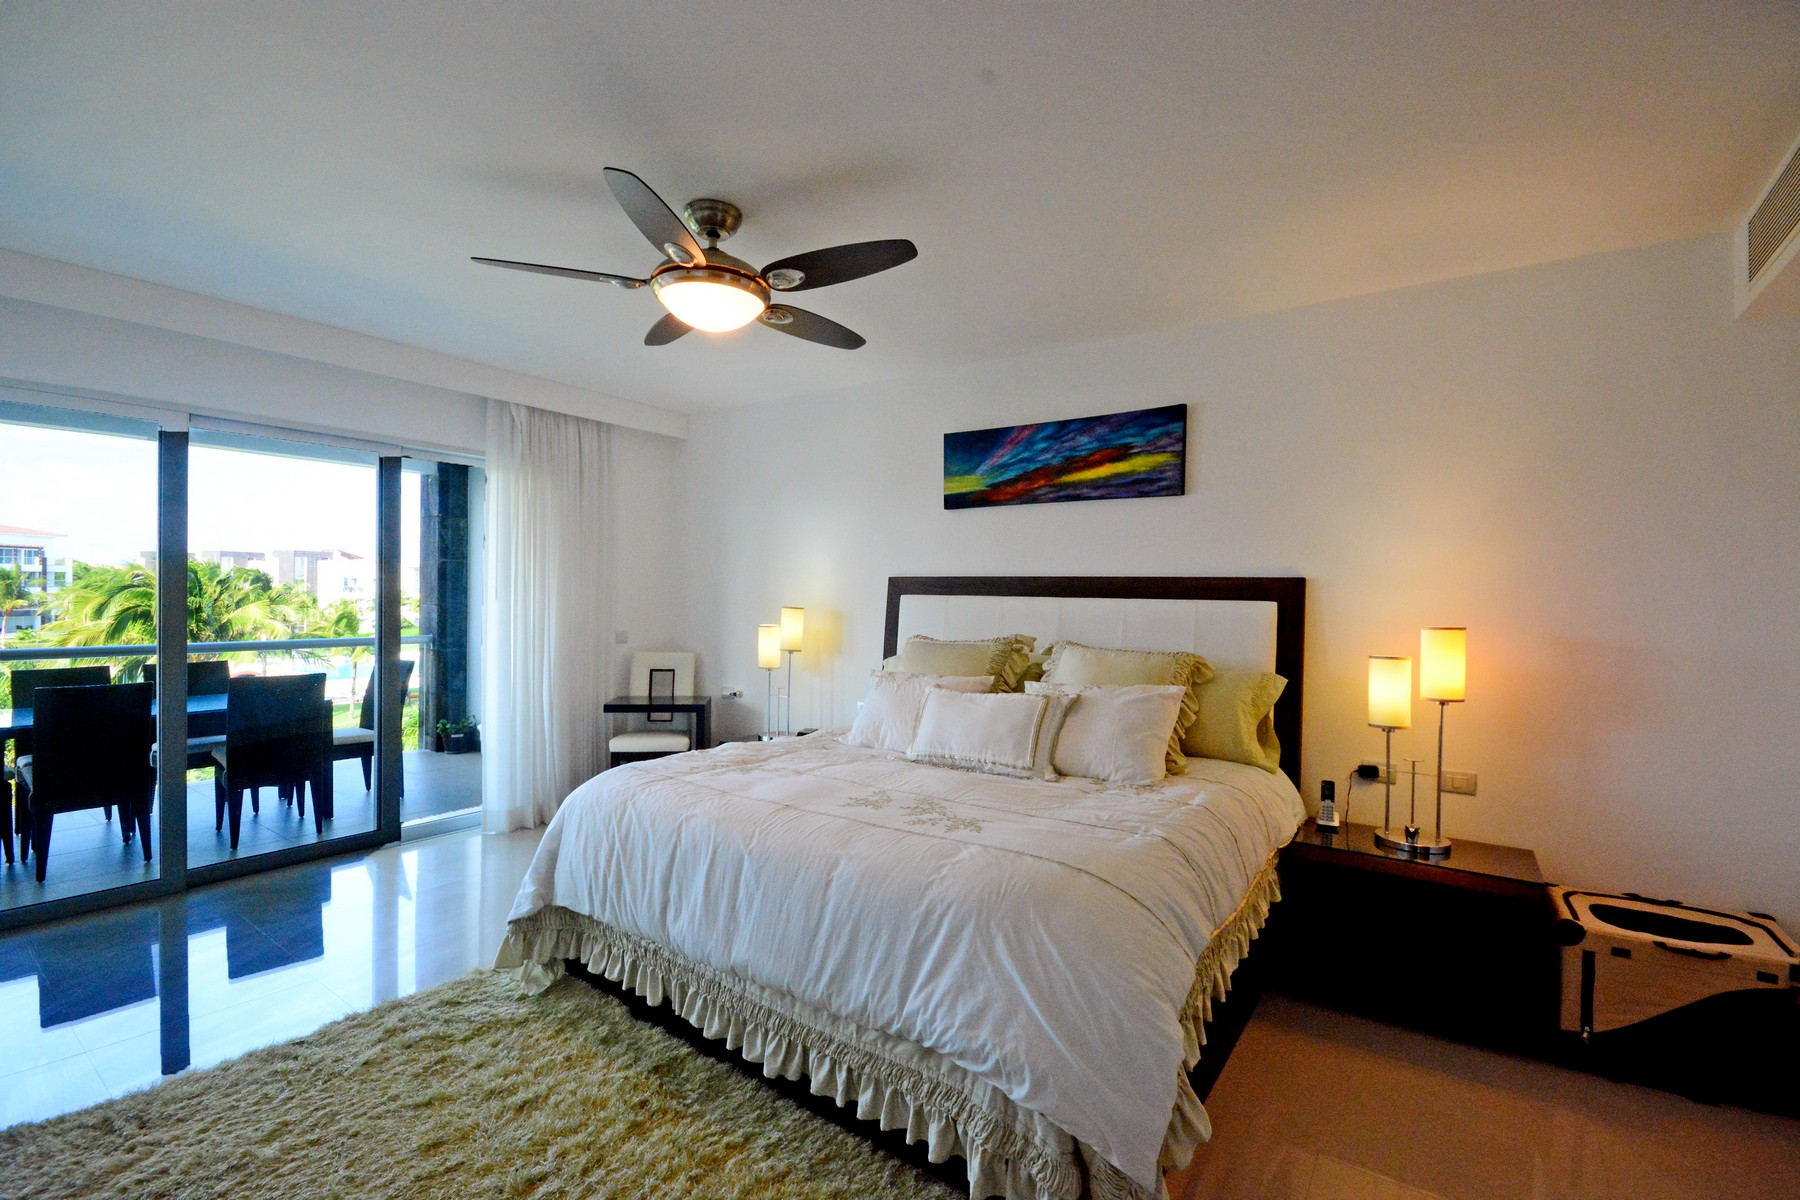 Additional photo for property listing at LUXURY CONDO OCEAN VIEW Luxury Condo Ocean View Mareazul Playa Del Carmen, Quintana Roo 77710 Mexico